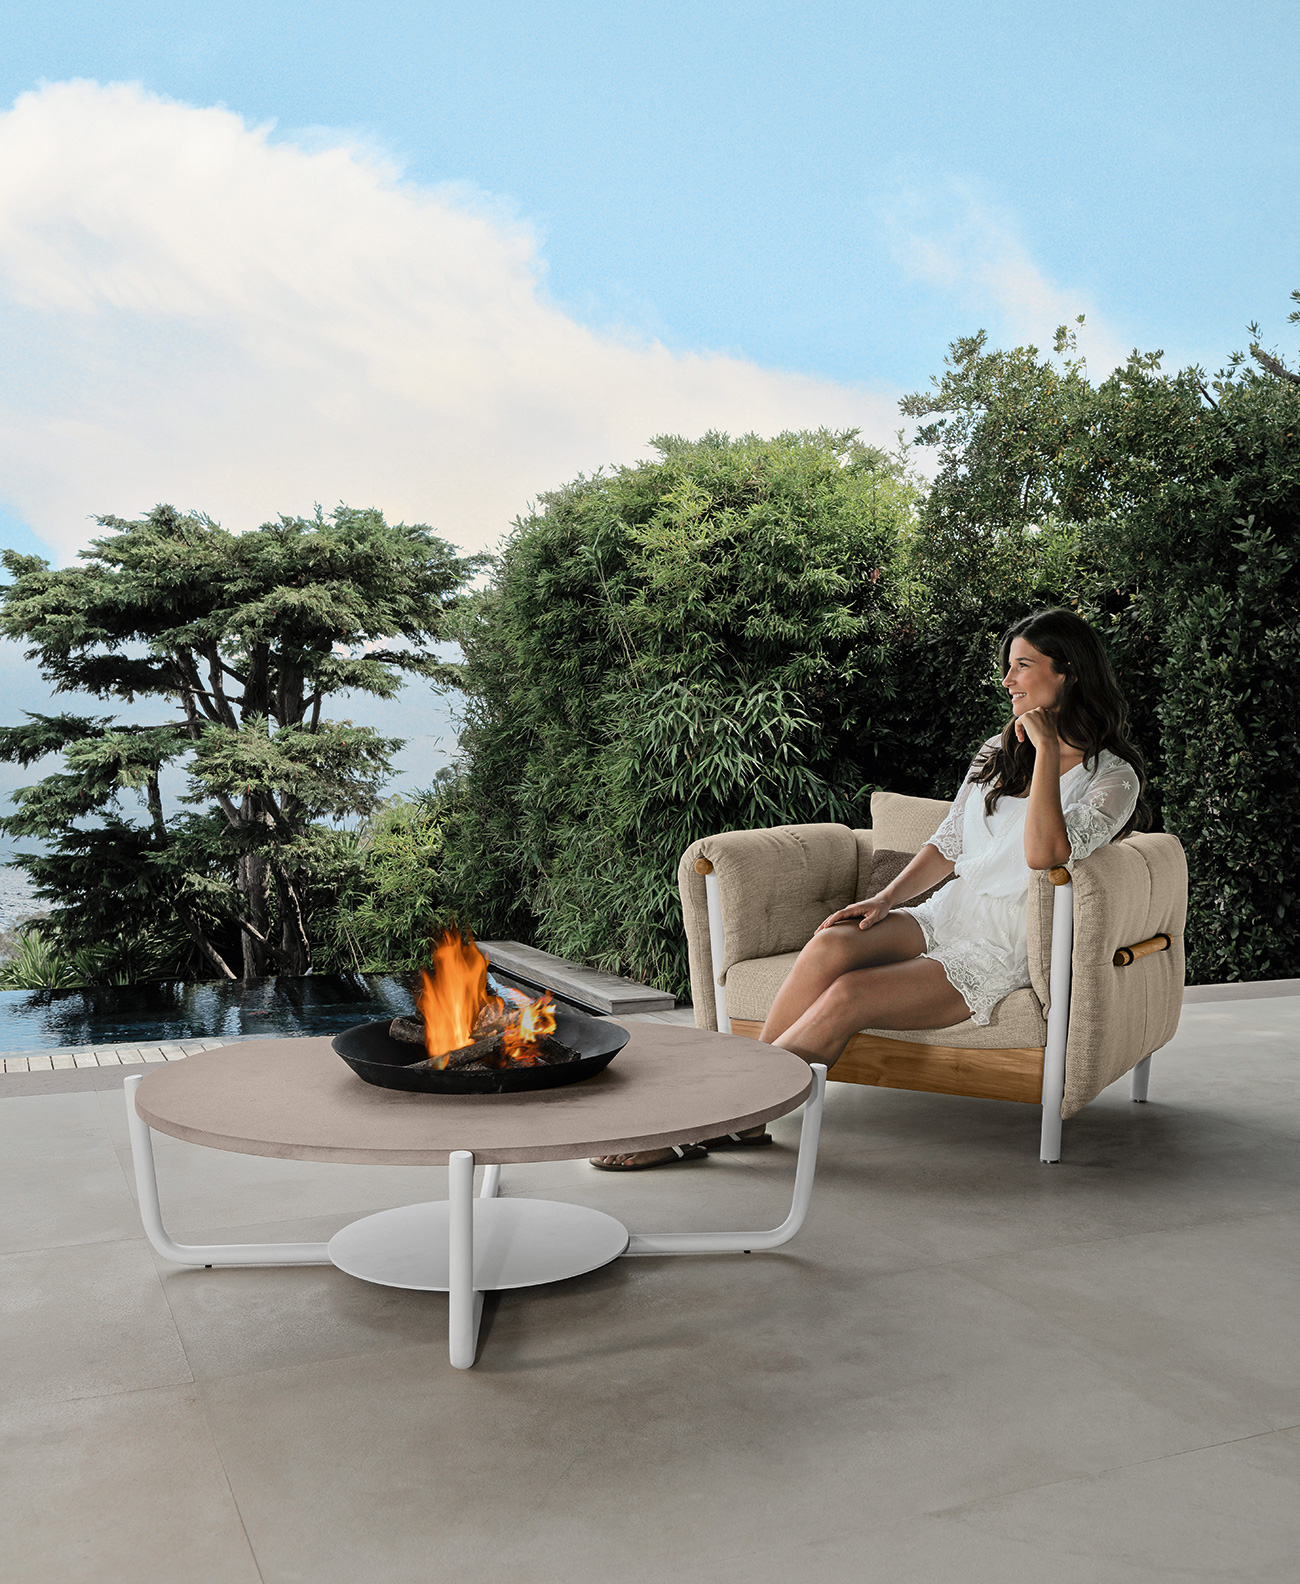 Outdoor aluminium armchair. Armchair for garden and terrace. Buy online our luxury garden furniture. Outdoor handcrafted furniture made in Italy